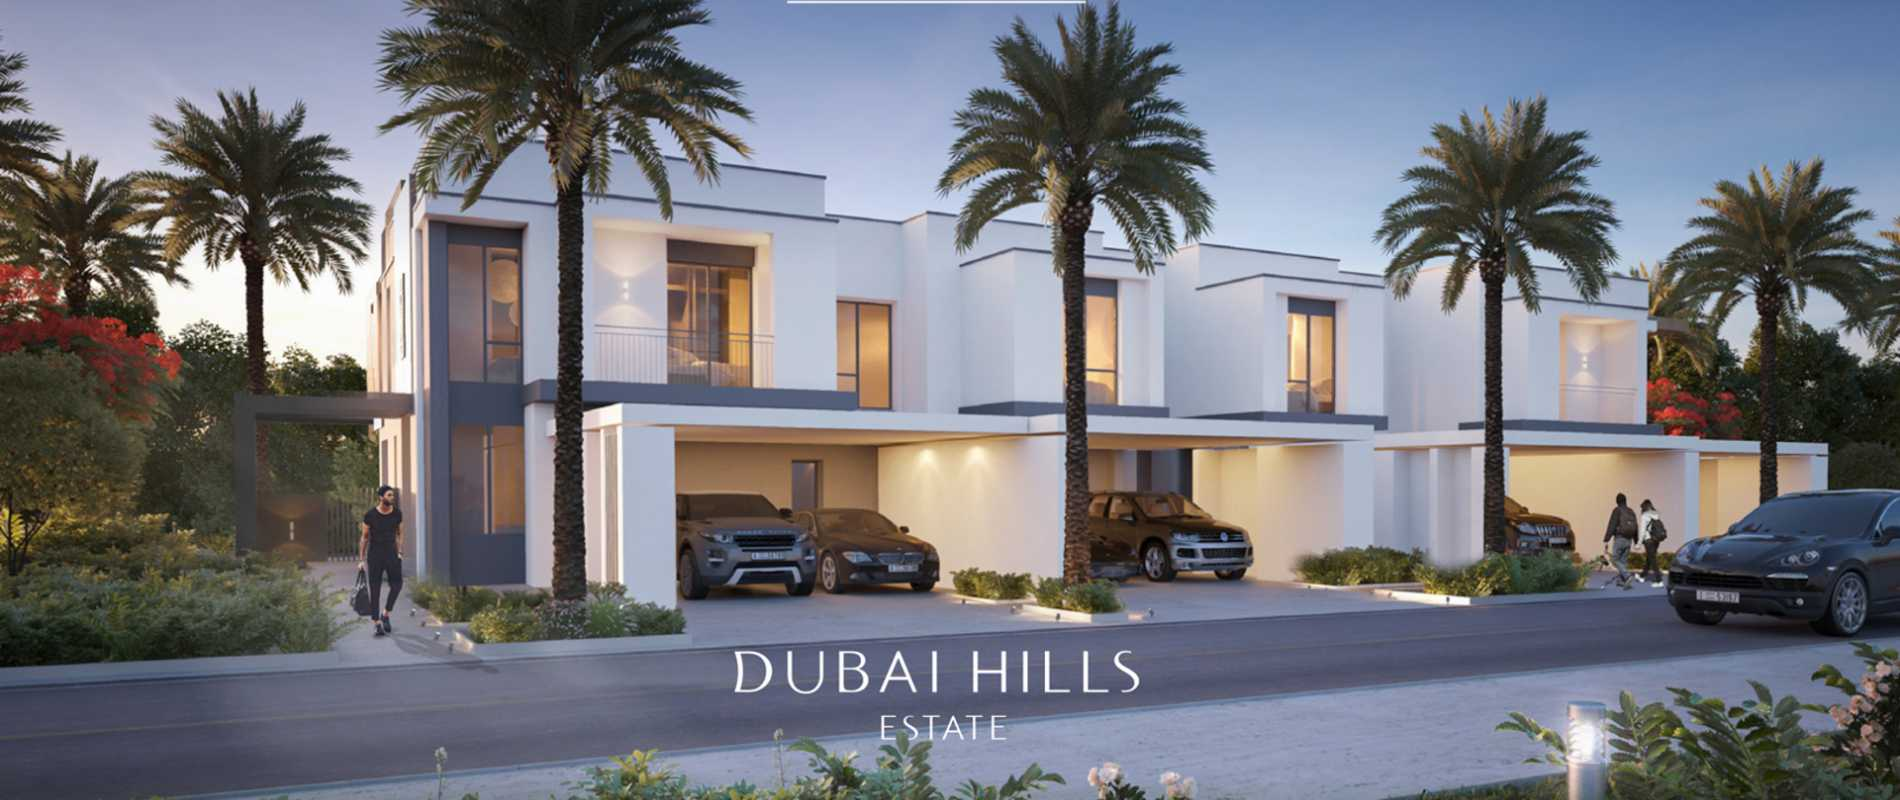 Luxury Property Dubai 4 Bedroom Villa for sale in Maple At Dubai Hills Estate Dubai Hills Estate